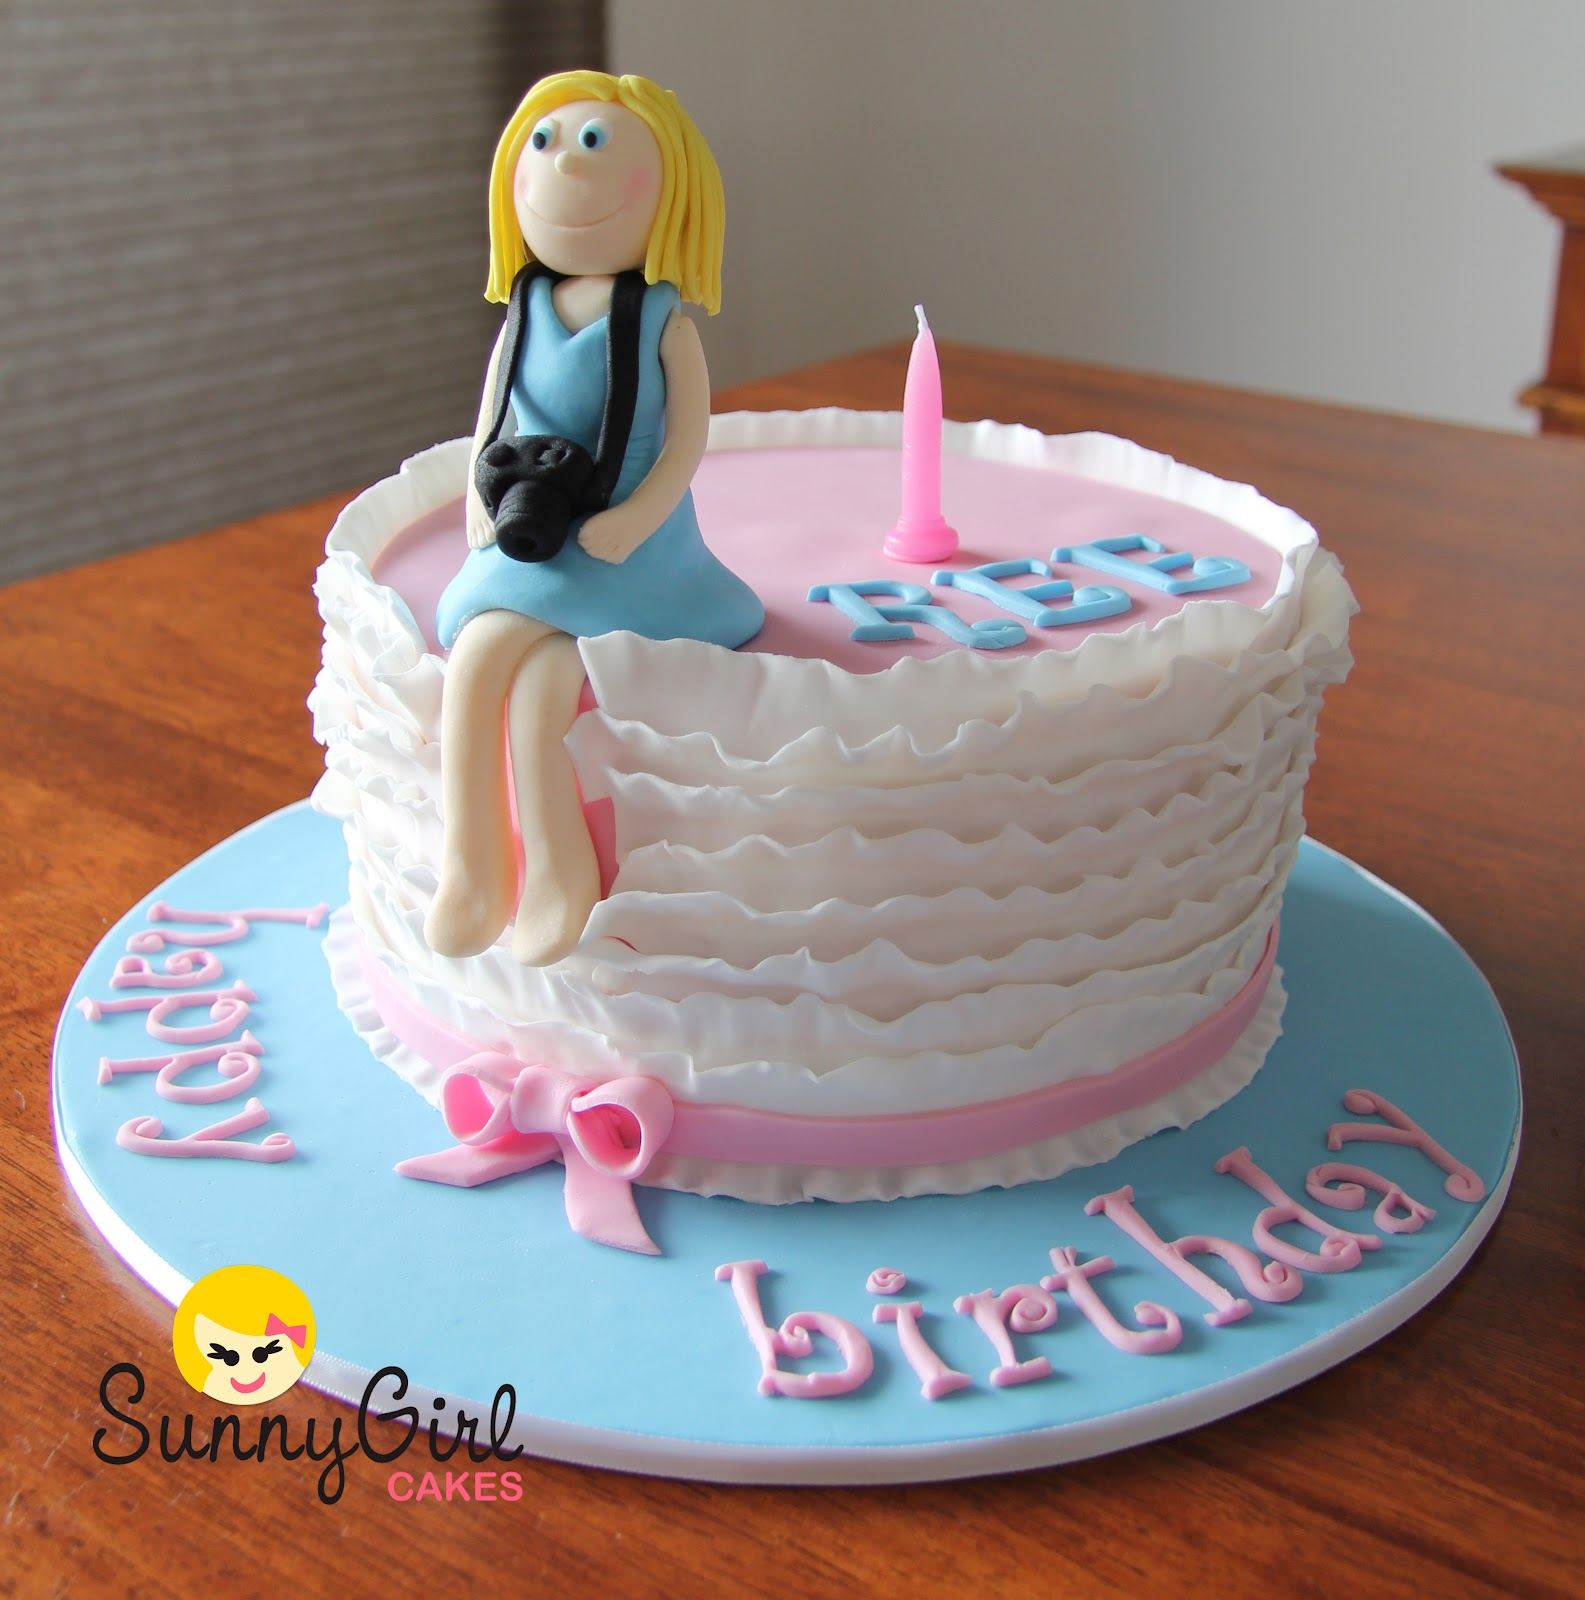 Birthday Cake Images With Name Sunny : Happy BIrthday Ree Sunny Girl Cakes